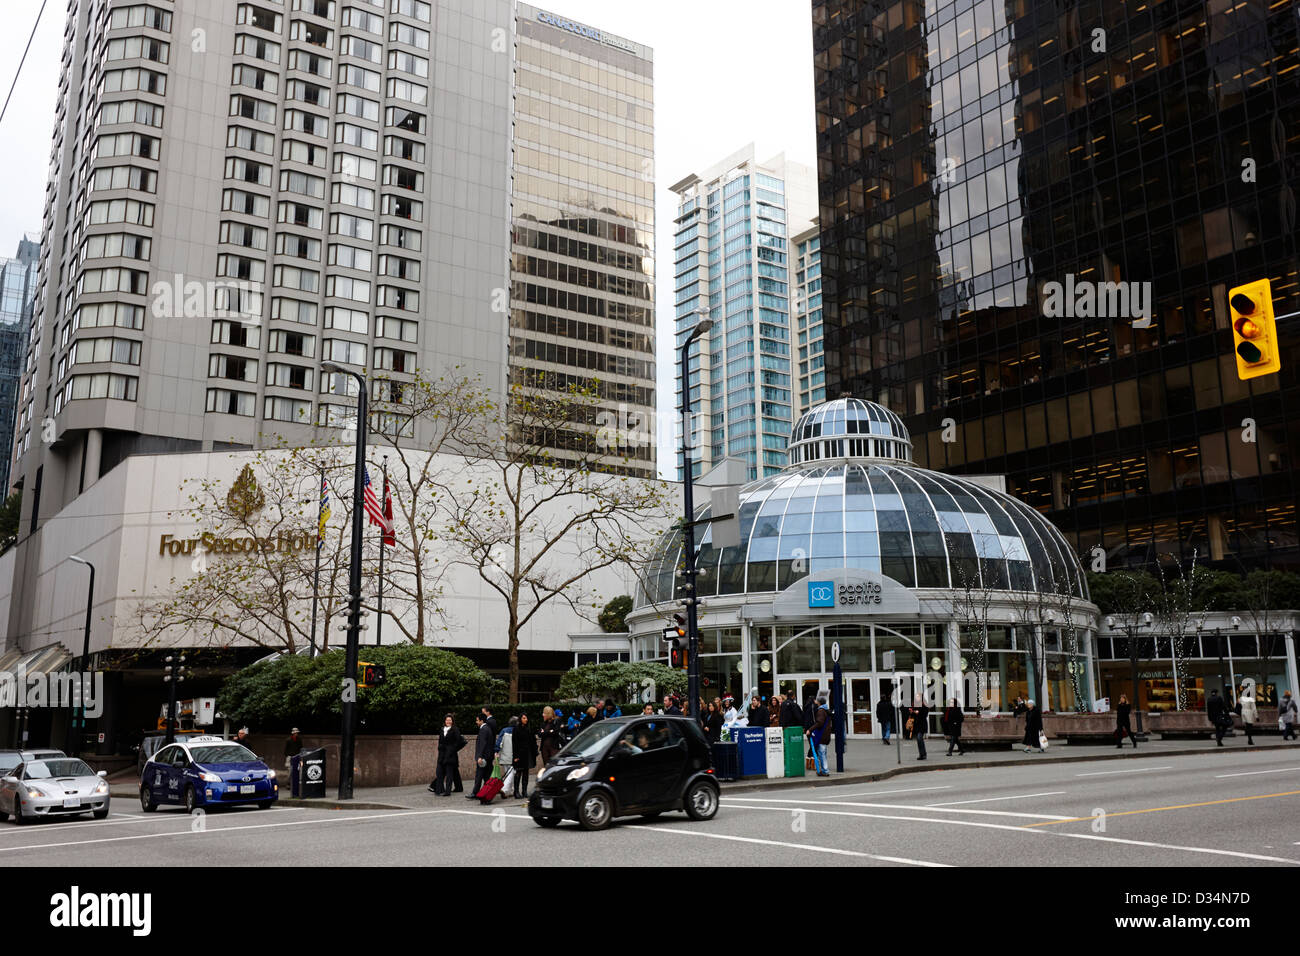 the four seasons hotel and pacific centre Vancouver BC Canada - Stock Image